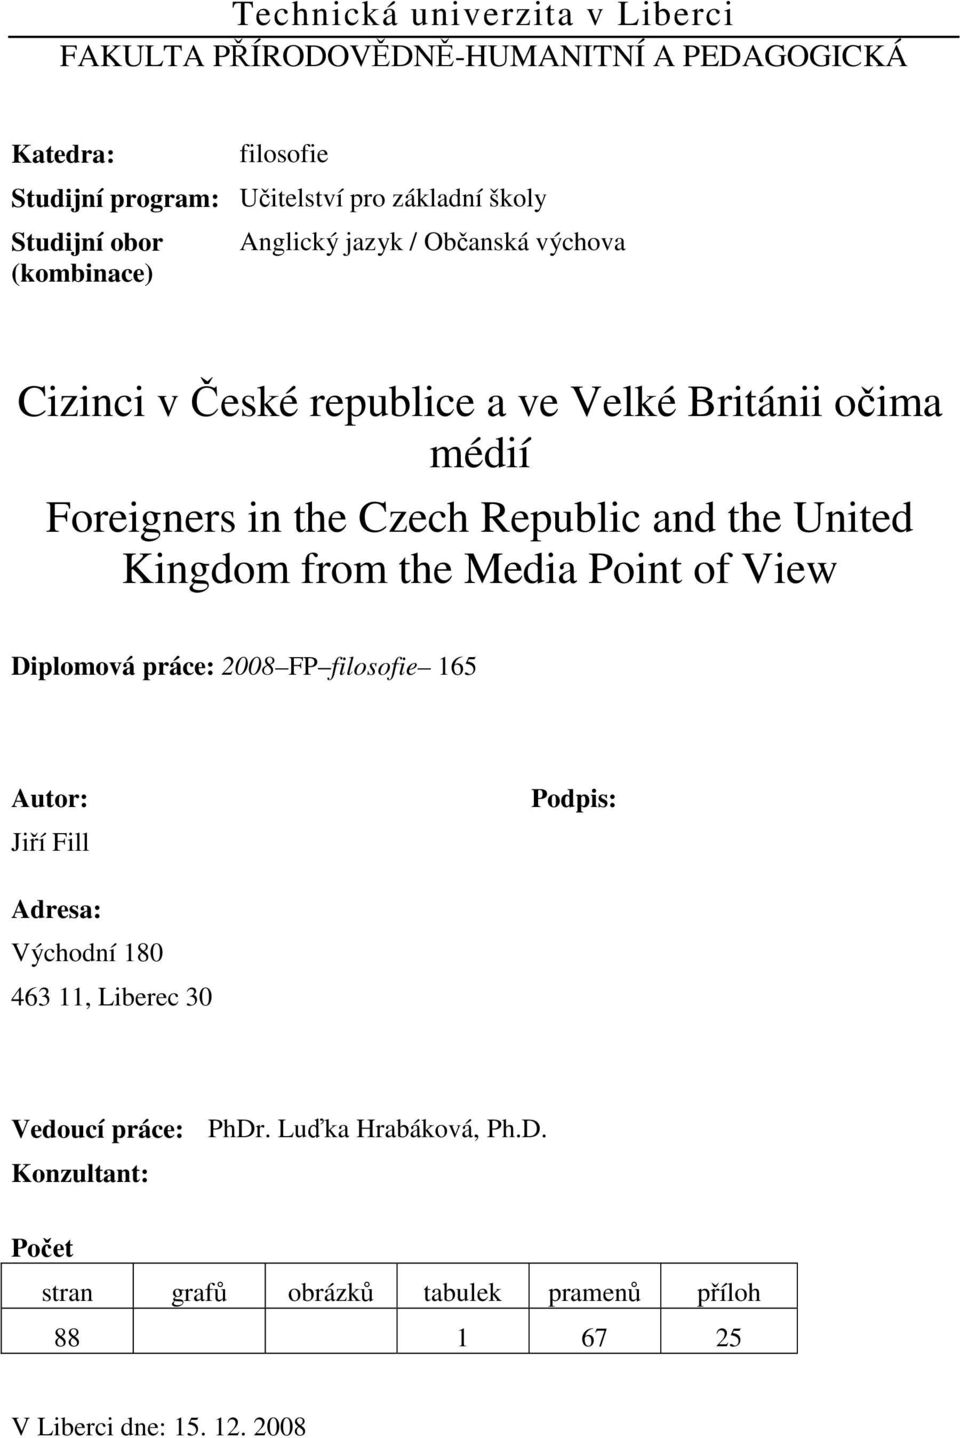 Republic and the United Kingdom from the Media Point of View Diplomová práce: 2008 FP filosofie 165 Autor: Jiří Fill Podpis: Adresa: Východní 180